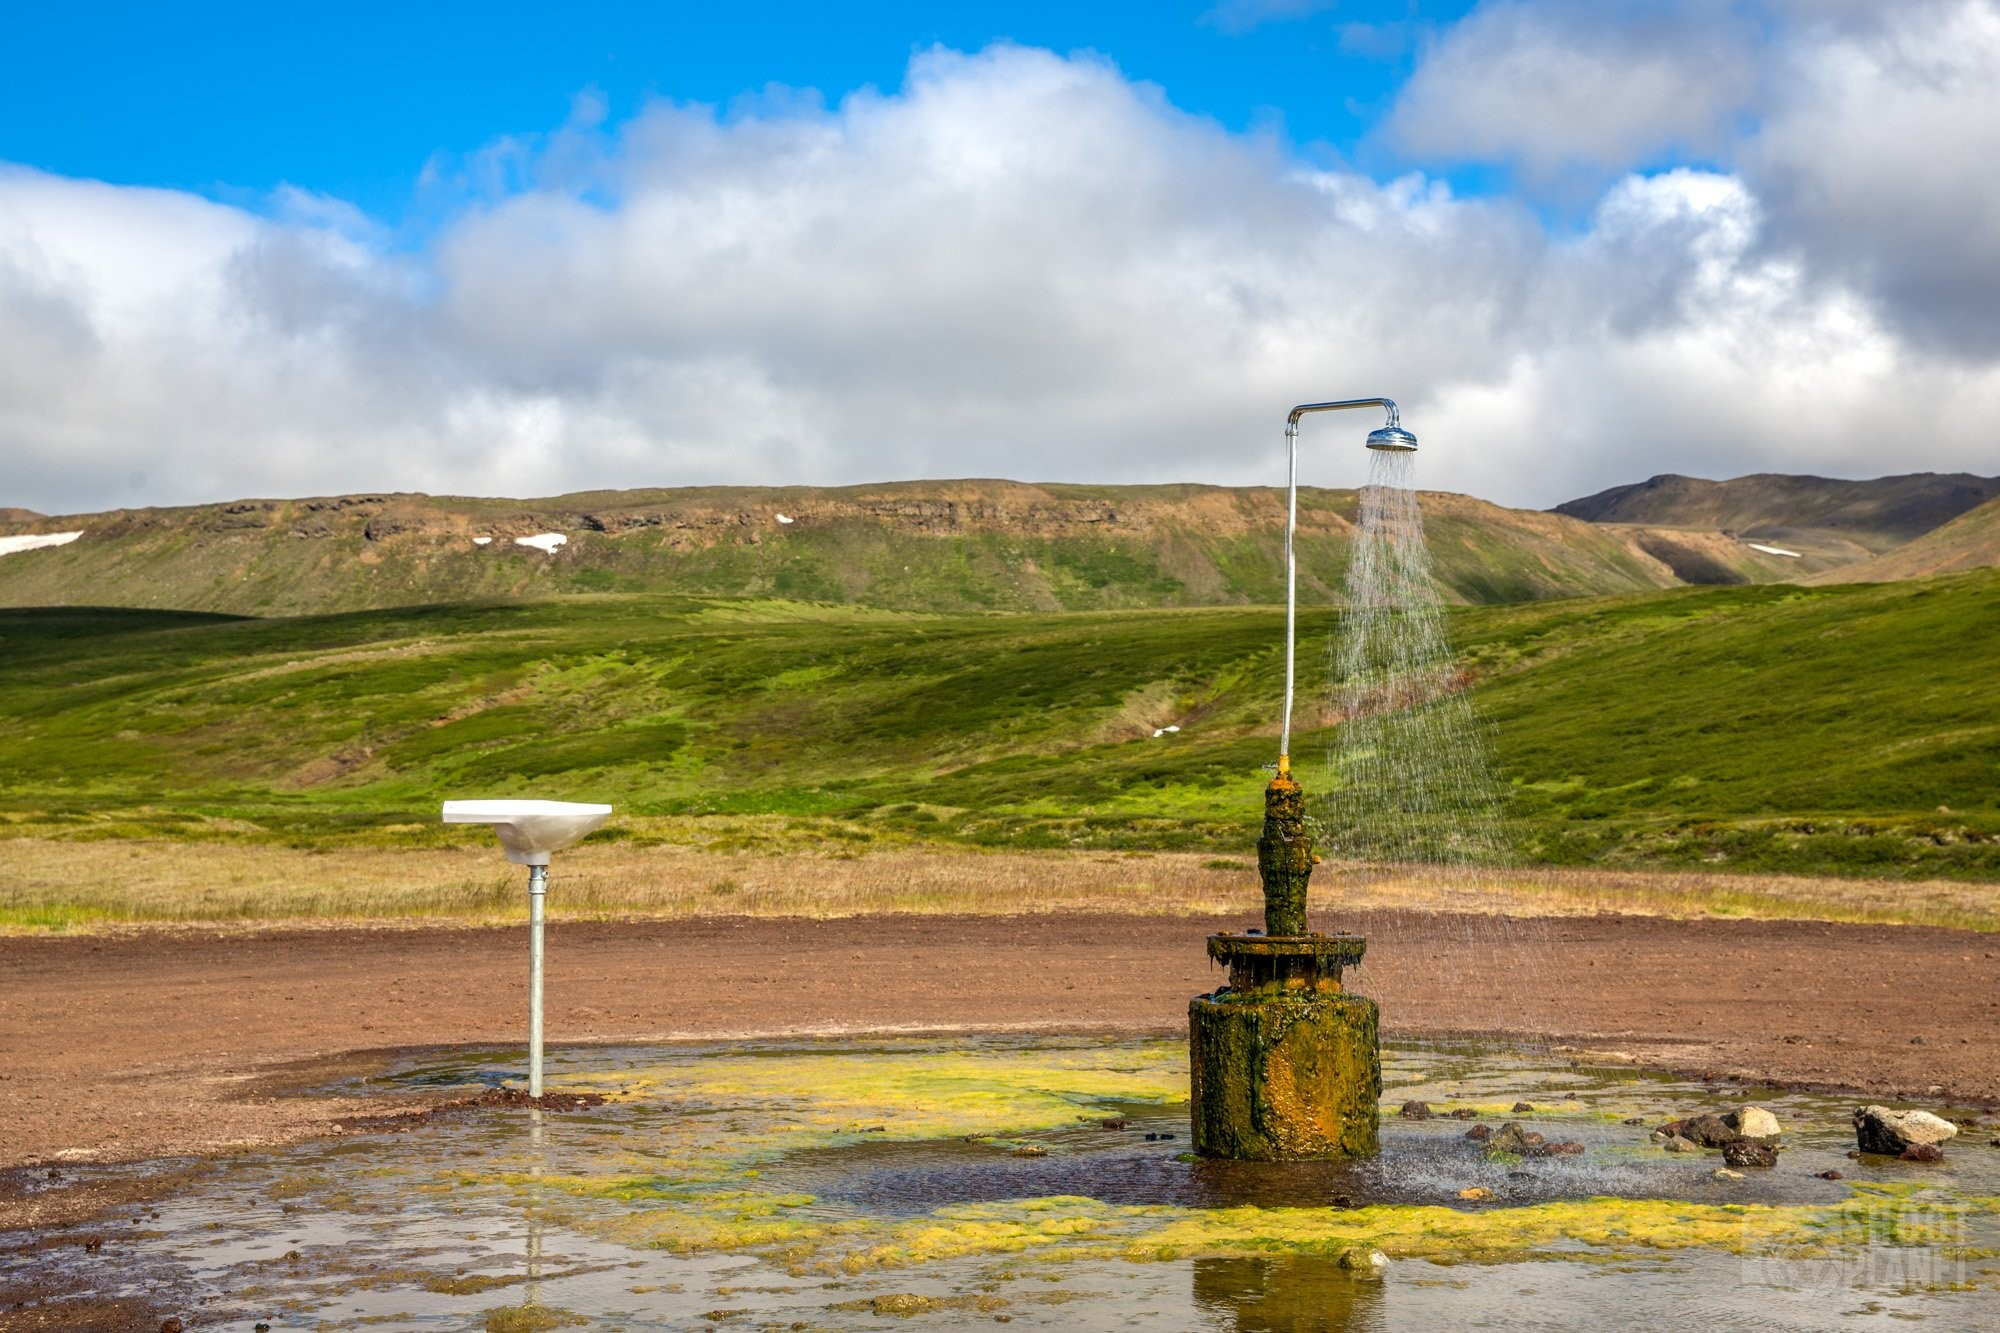 Outdoor geothermally-heated shower in Iceland